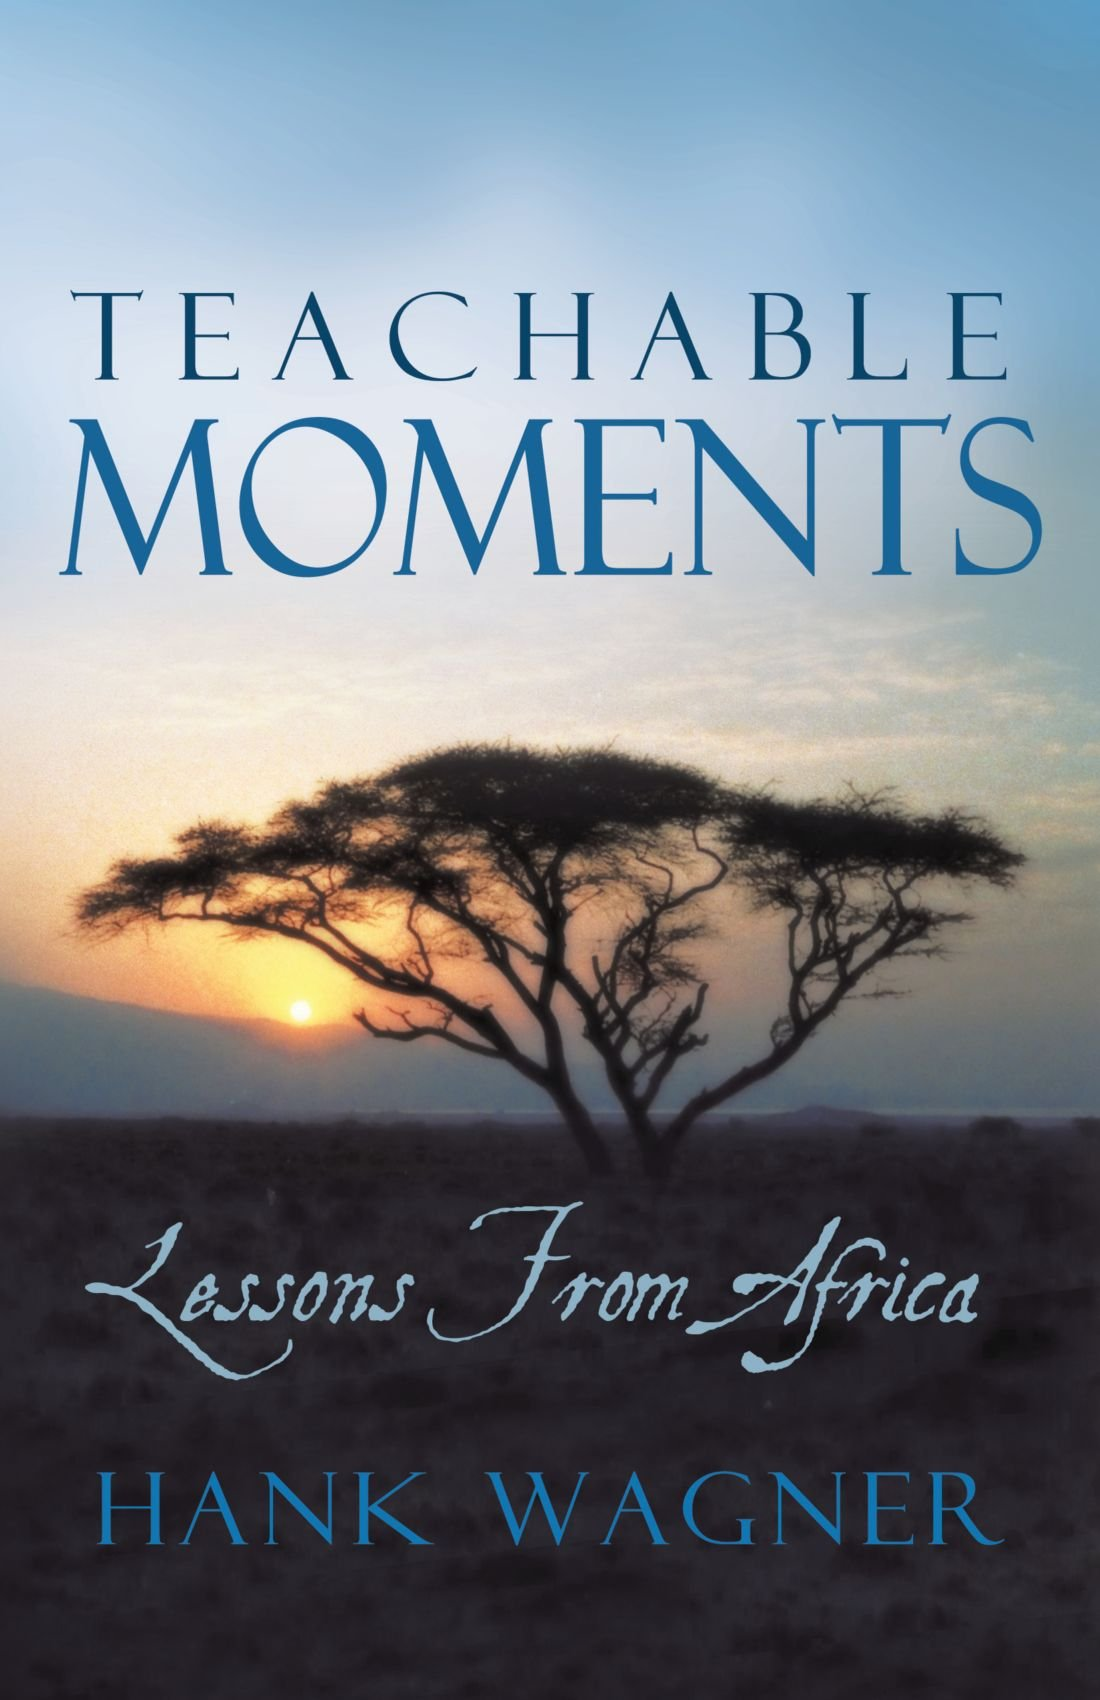 Teachable Moments by Hank Wagner